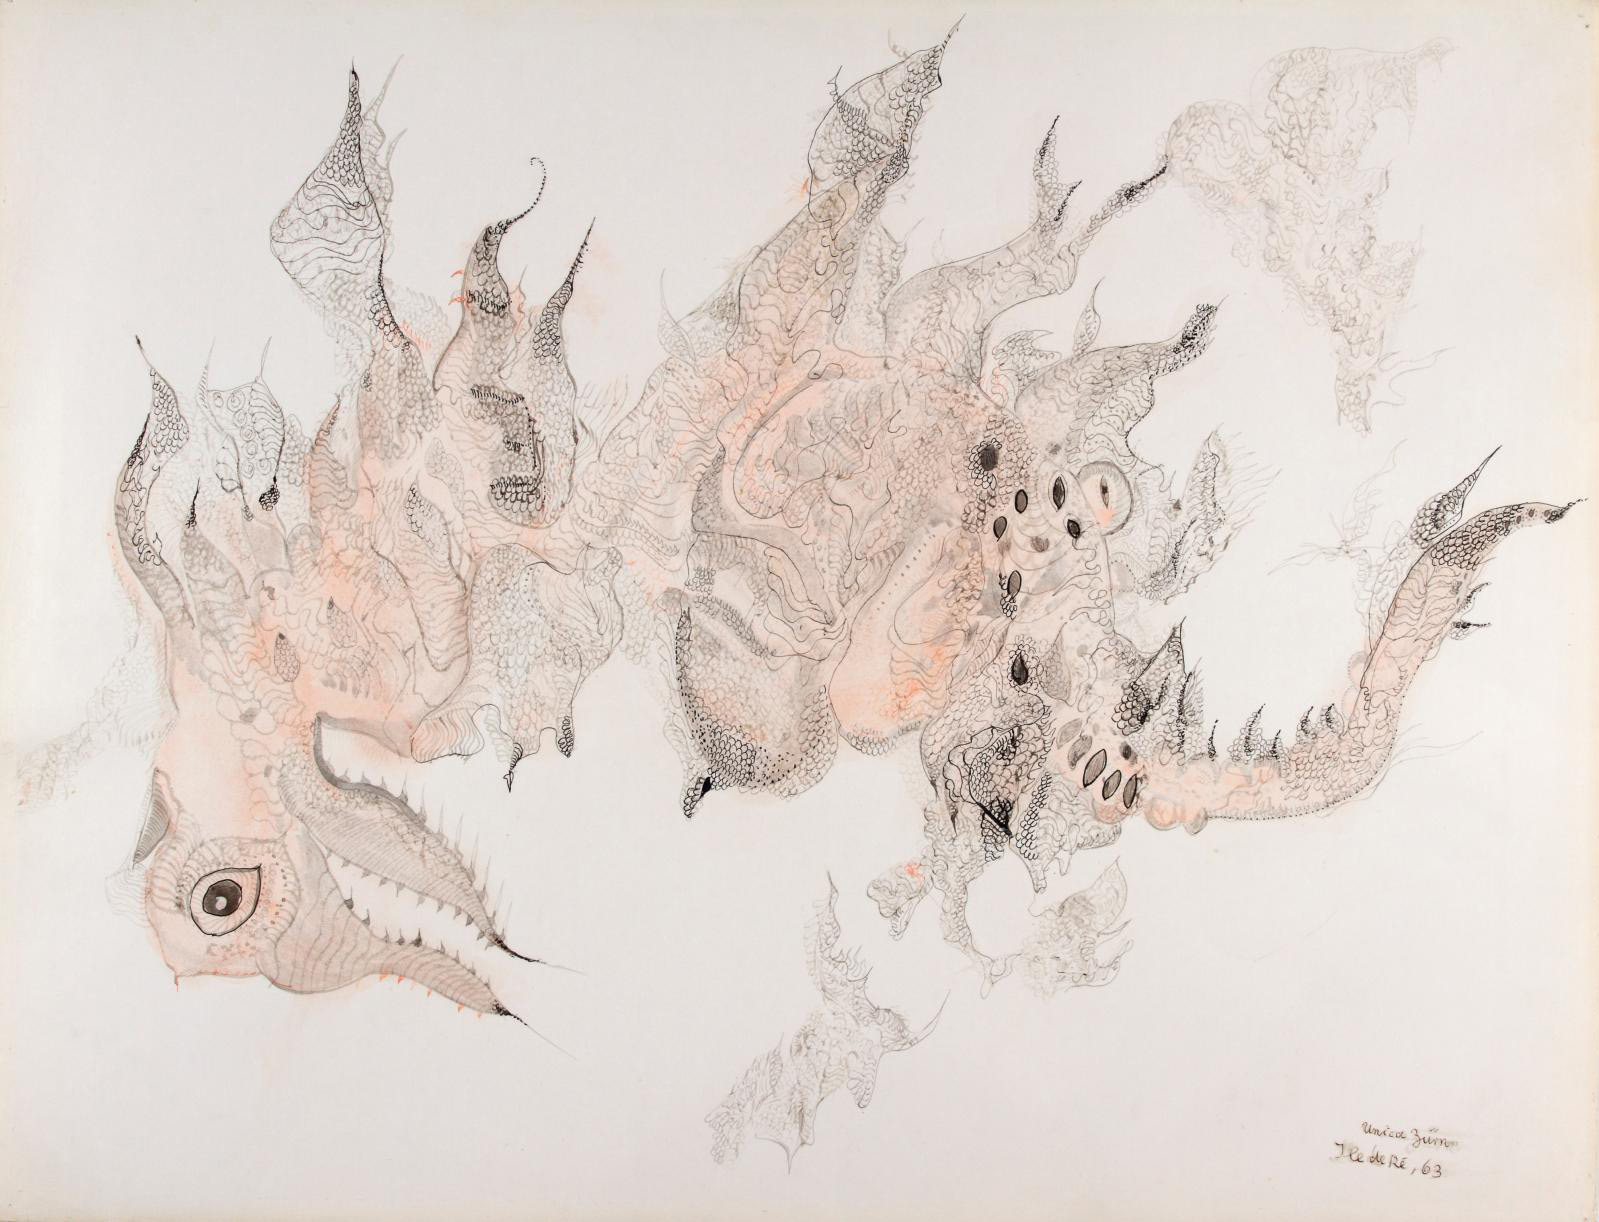 Unica Zürn, Ile de Ré, 1963, ink and gouache on paper, 50.2 x 65.4 cm/19.76 x 25.75 in.Courtesy Ubu Gallery, New York